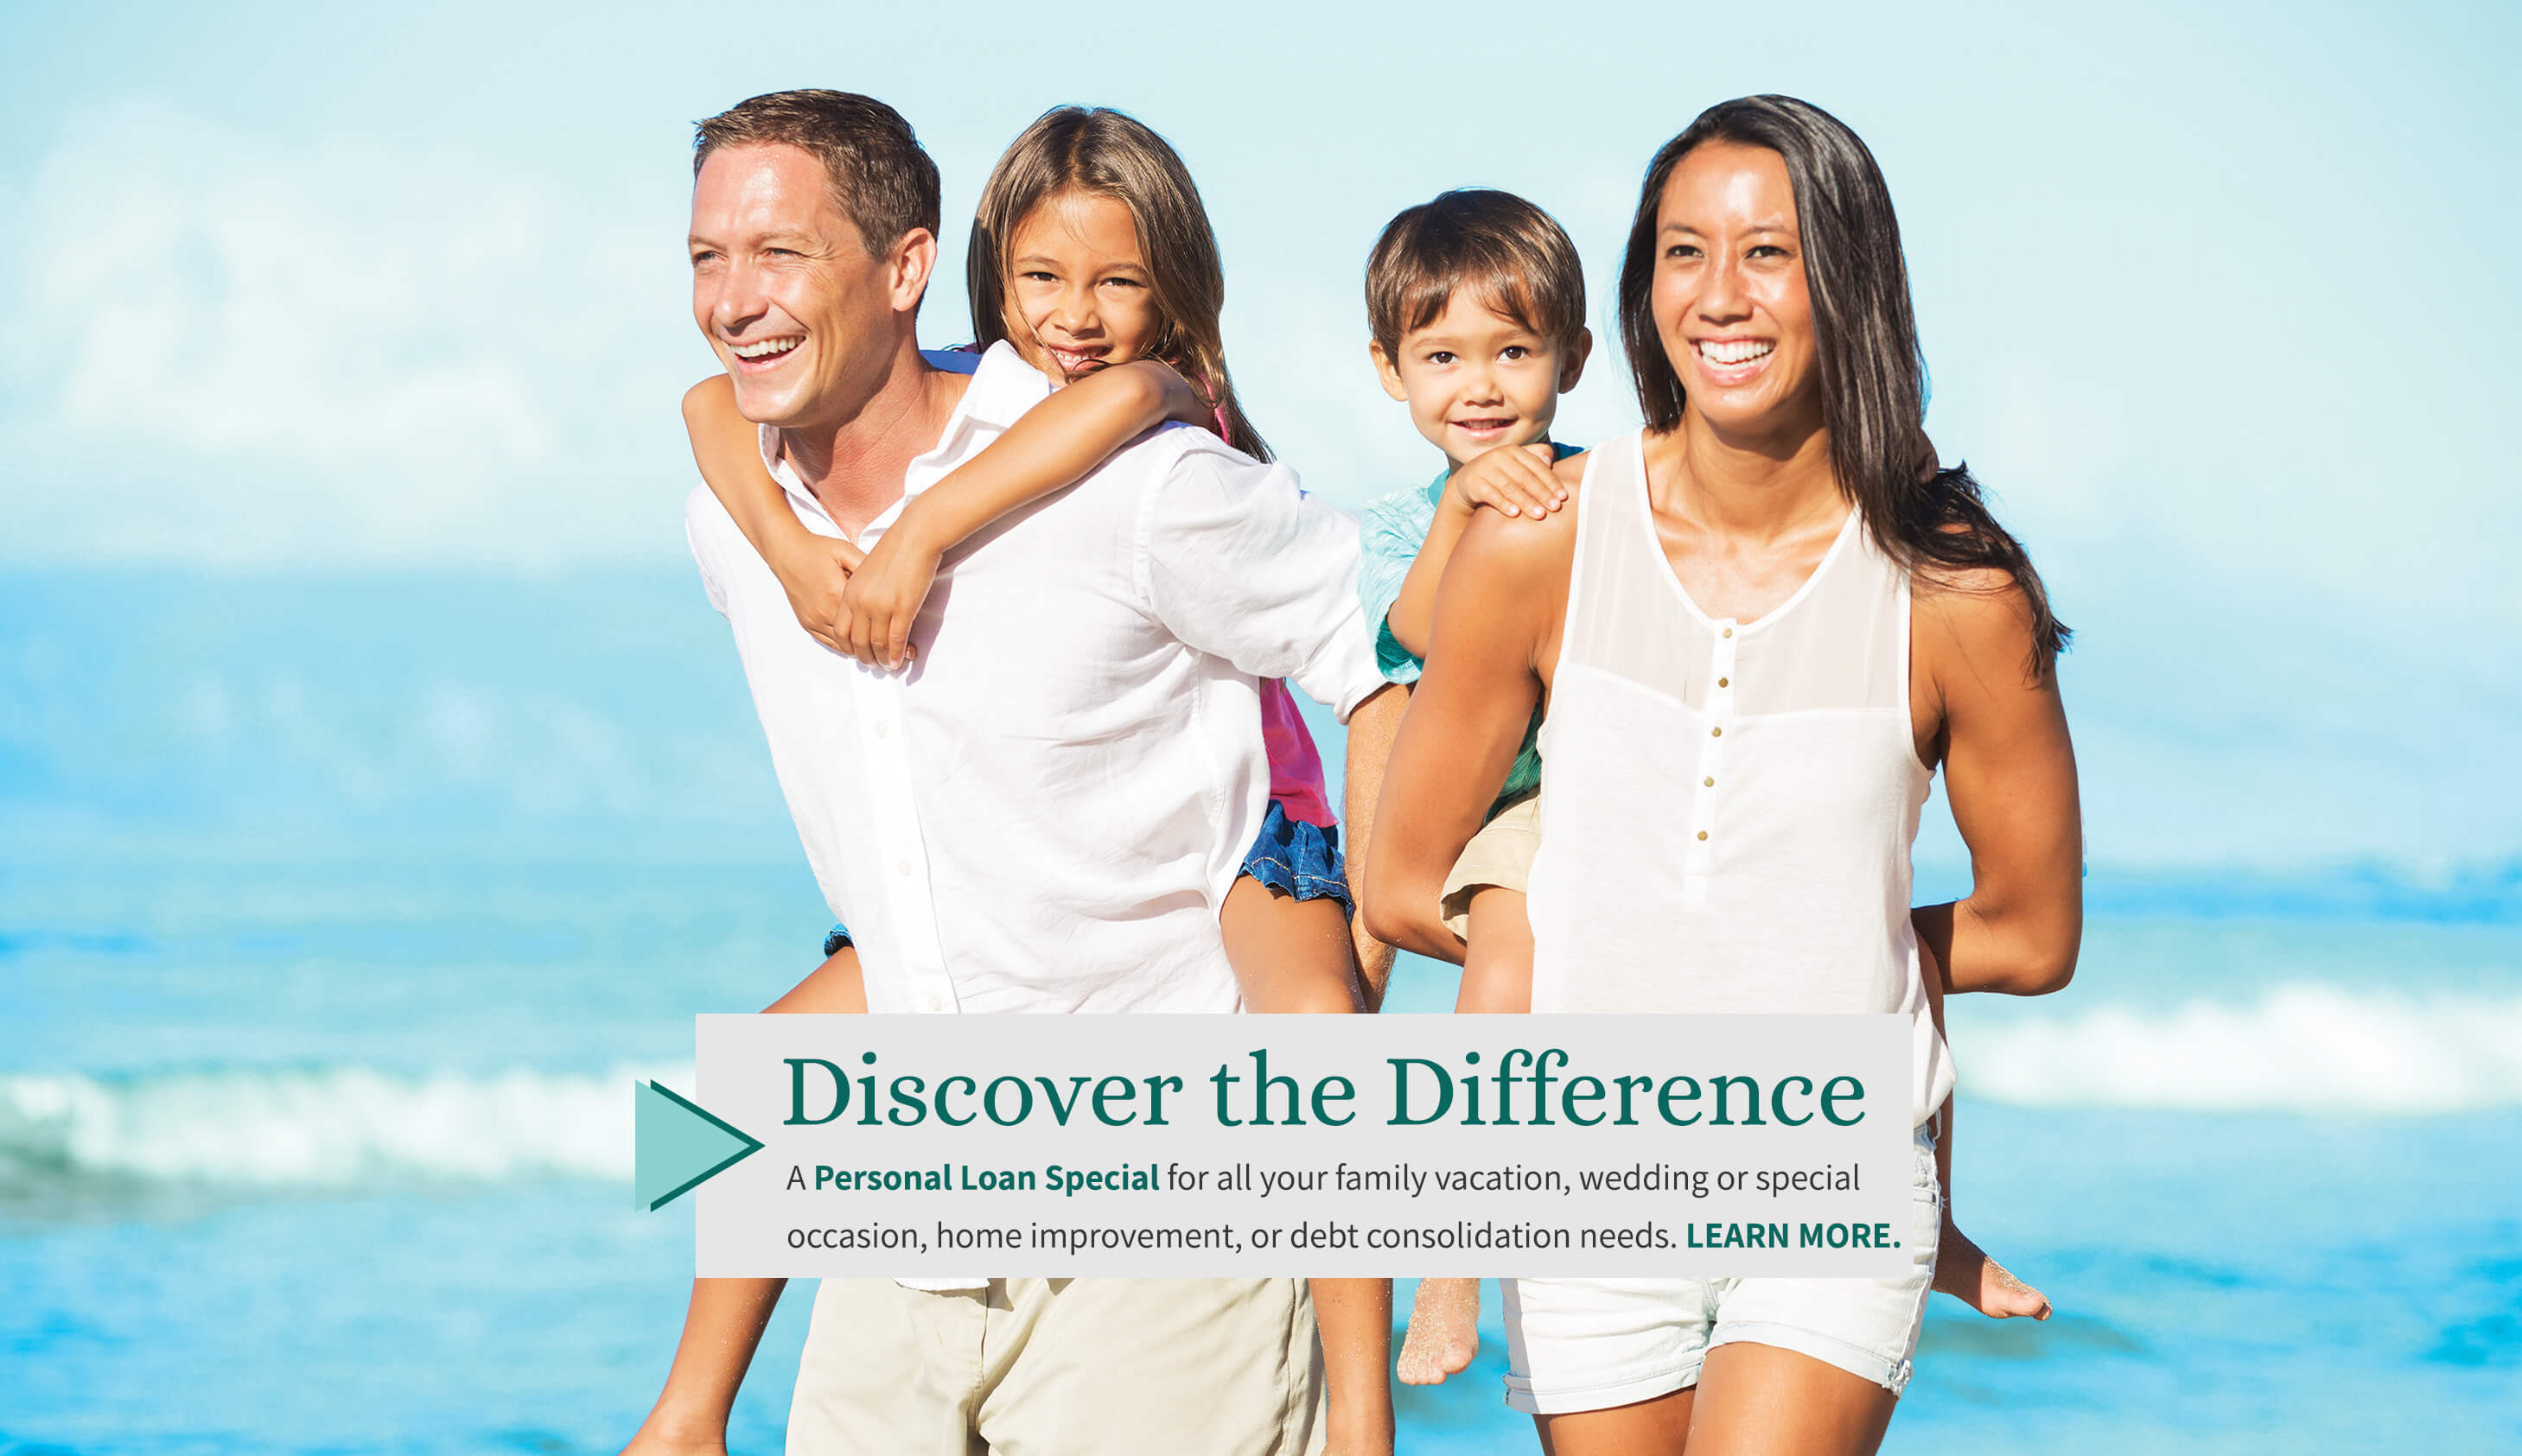 Discover the Difference. A Personal Loan Special for all your family vacation, wedding or special occasion, home improvement, or debt consolidation needs. Learn More.